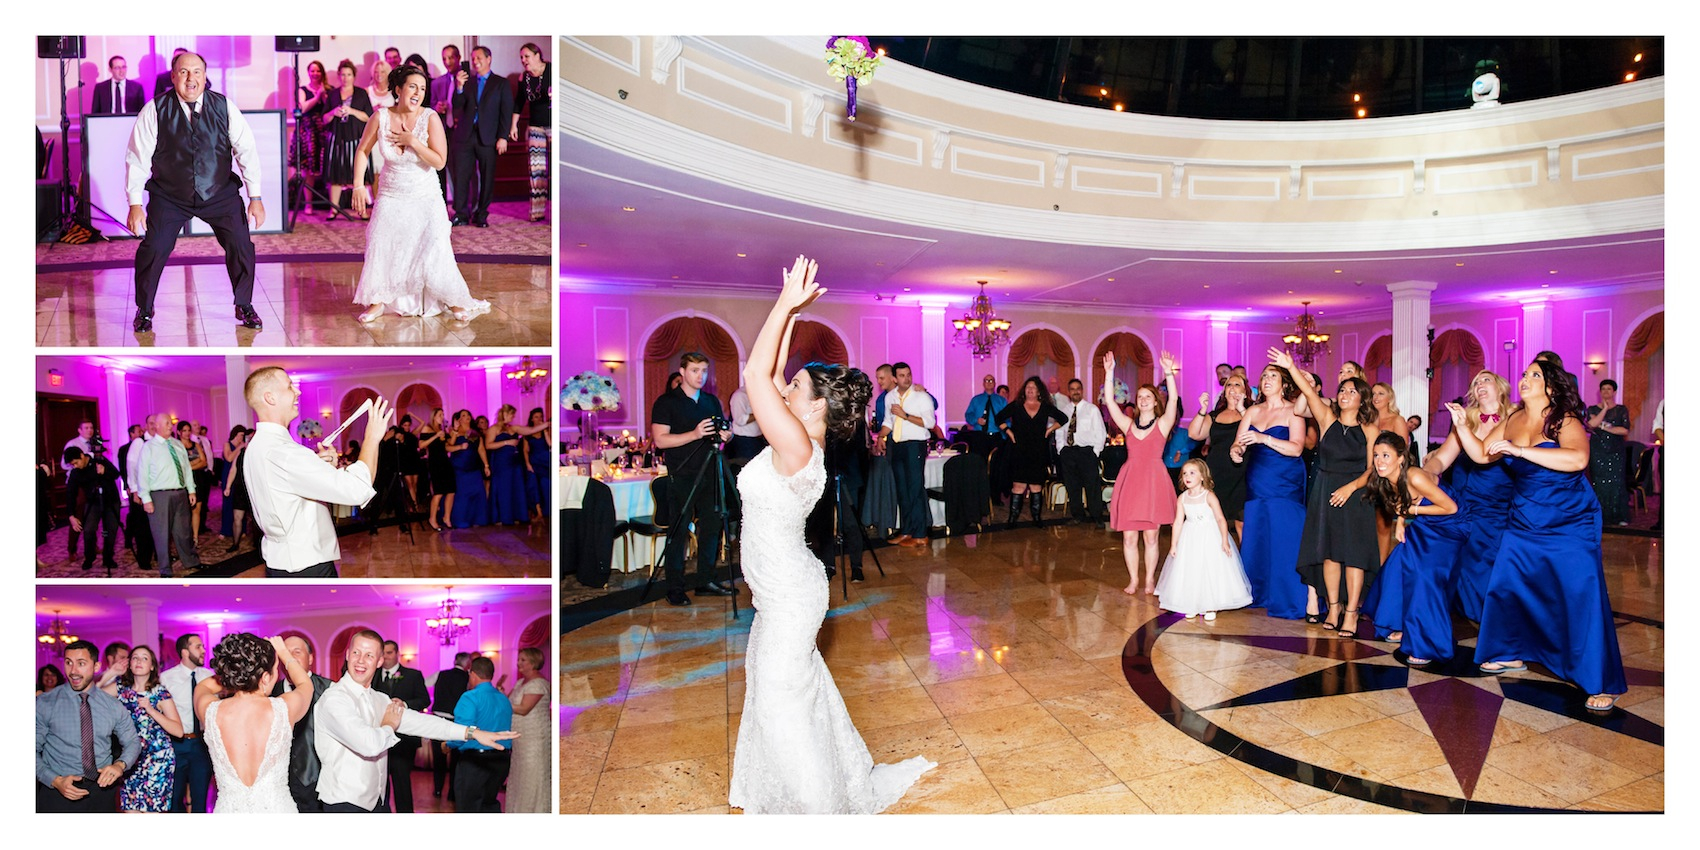 colleen-and-tommy-dance-floor-fun-album-page-in-nj-wedding-photography